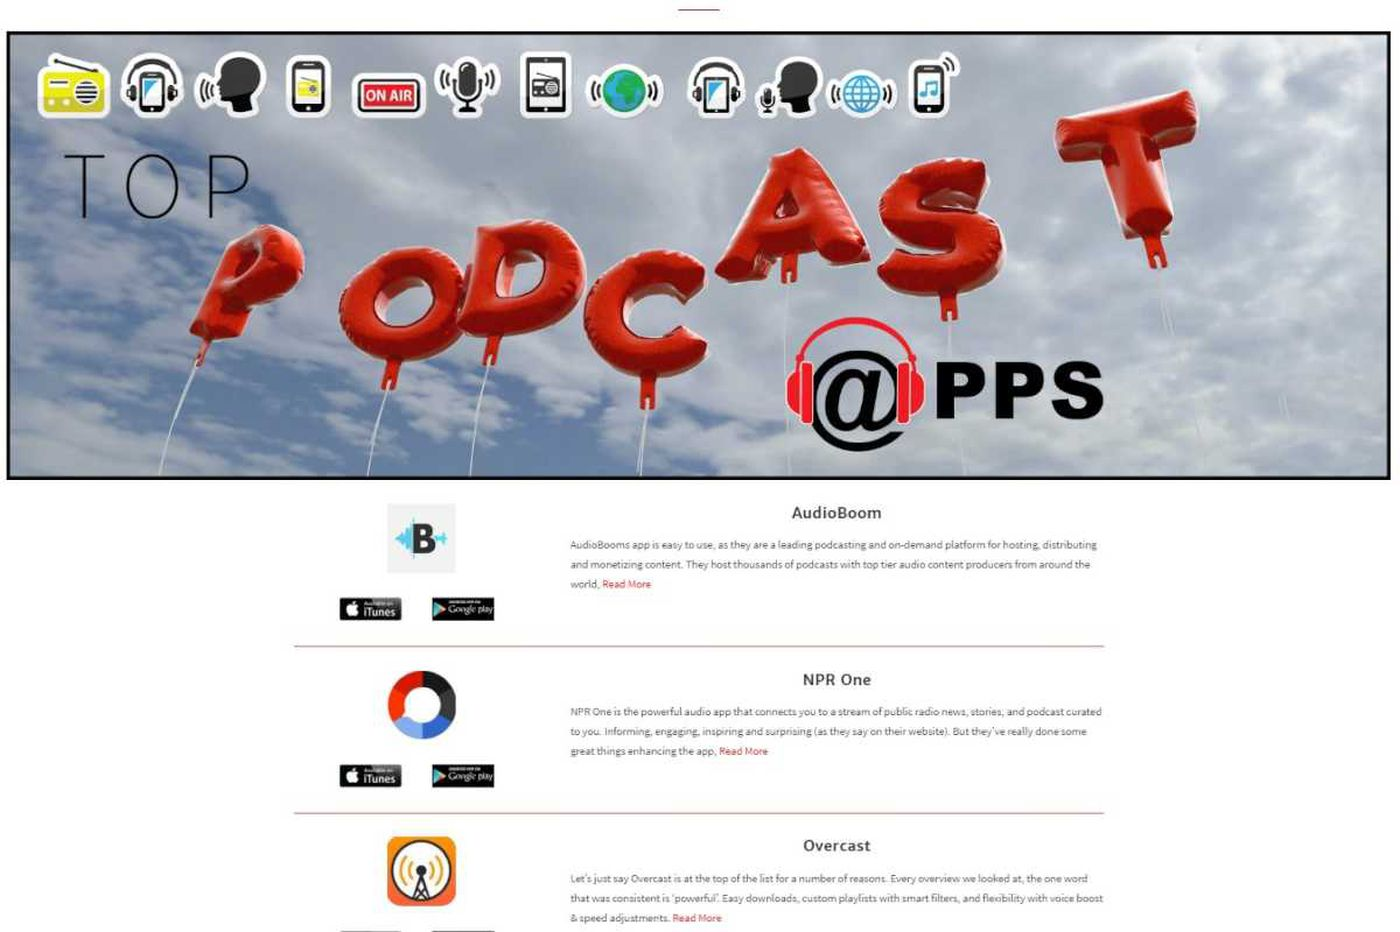 Tips on finding great podcasts, from 'Fresh Air' to TopPodCast.com